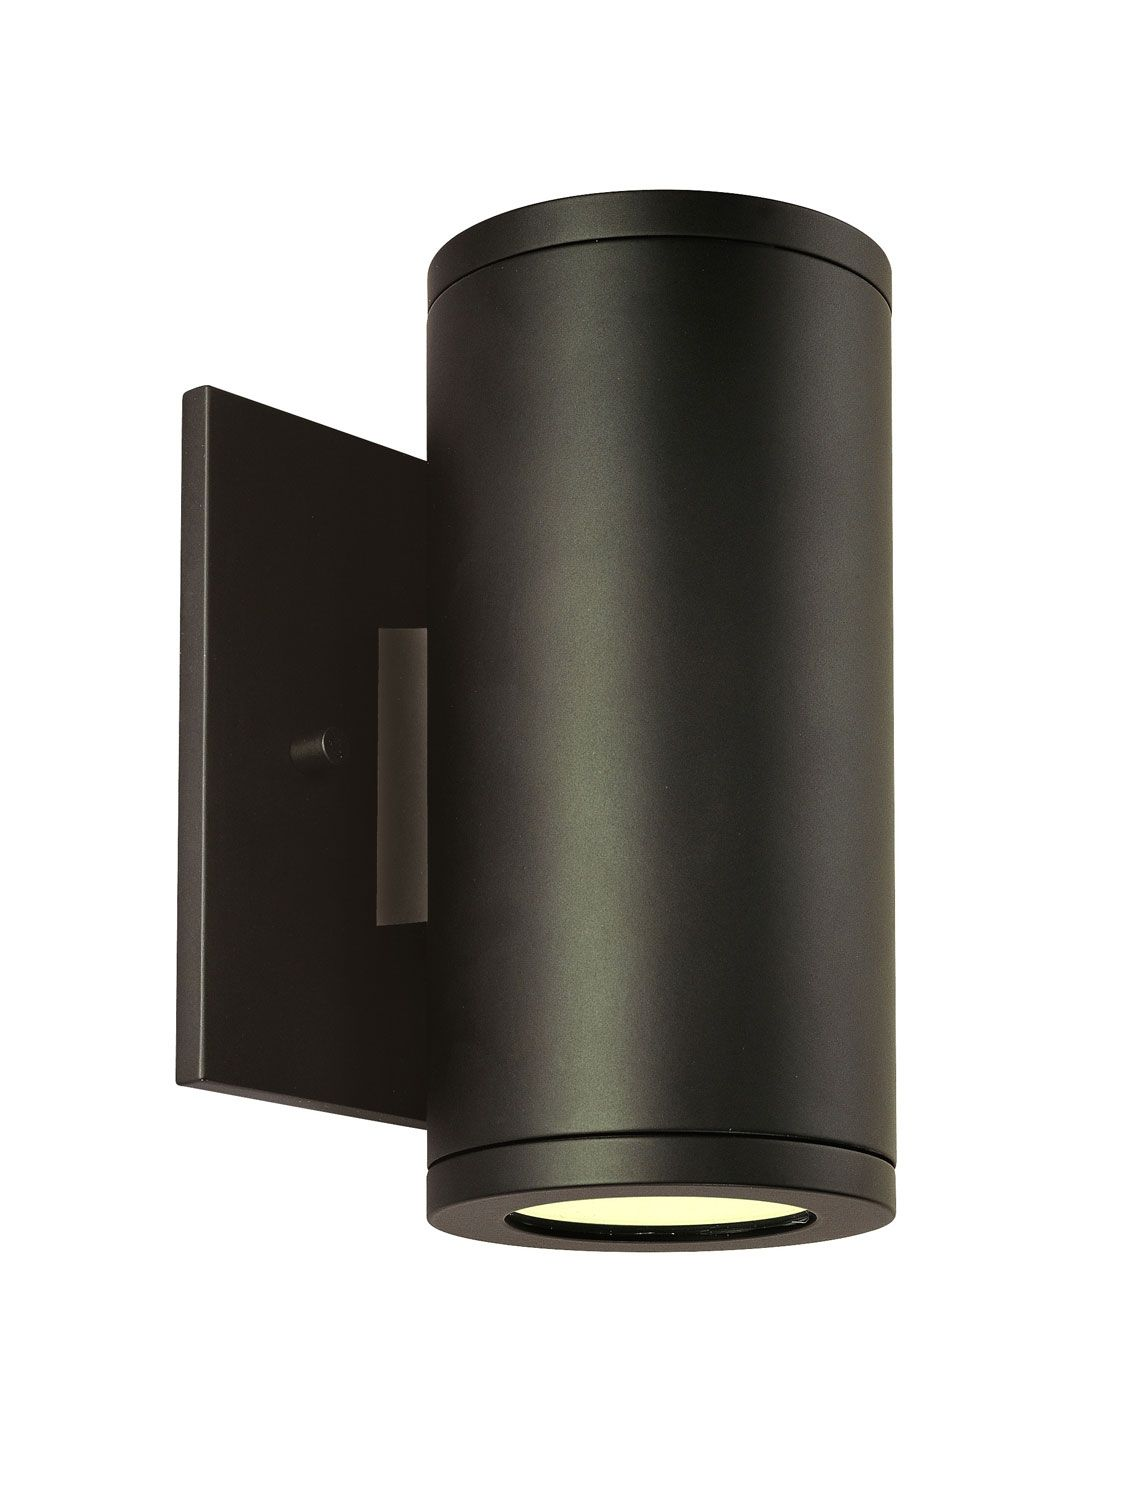 Wall mounted light fixtures revit httpdeai rankfo wall mounted light fixtures revit arubaitofo Gallery